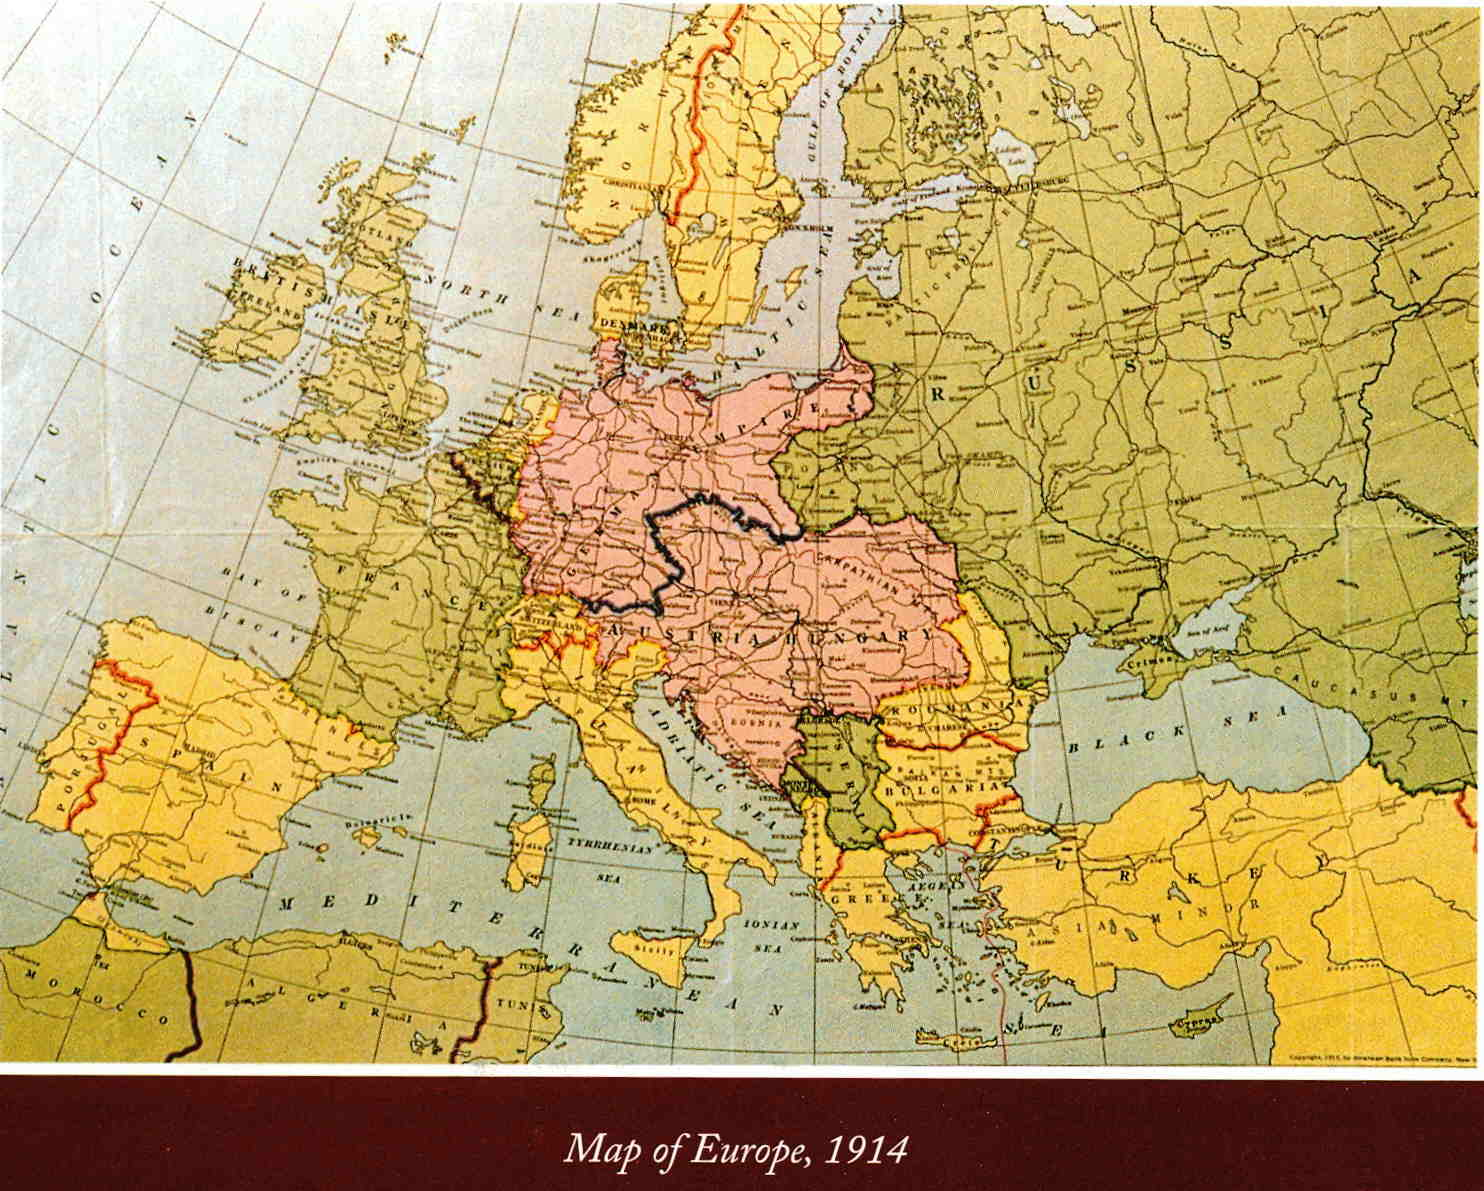 A map of Europe in 1914 before world war 1